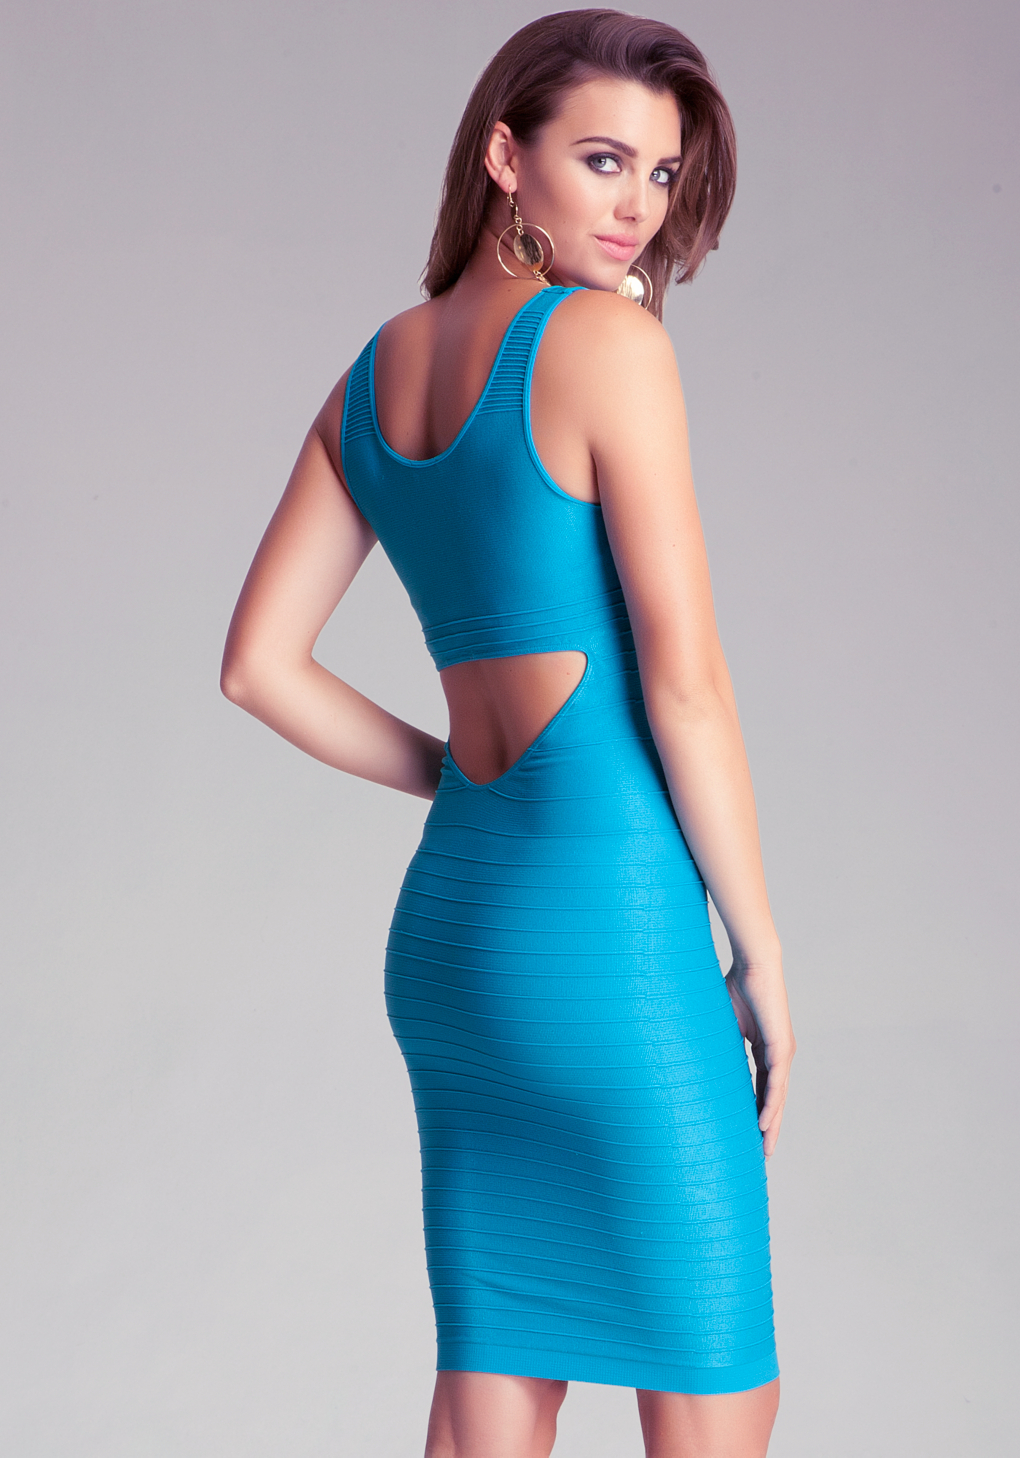 Bebe back cutout shine dress zilnasa waker bebe back cutout shine dress ombrellifo Images